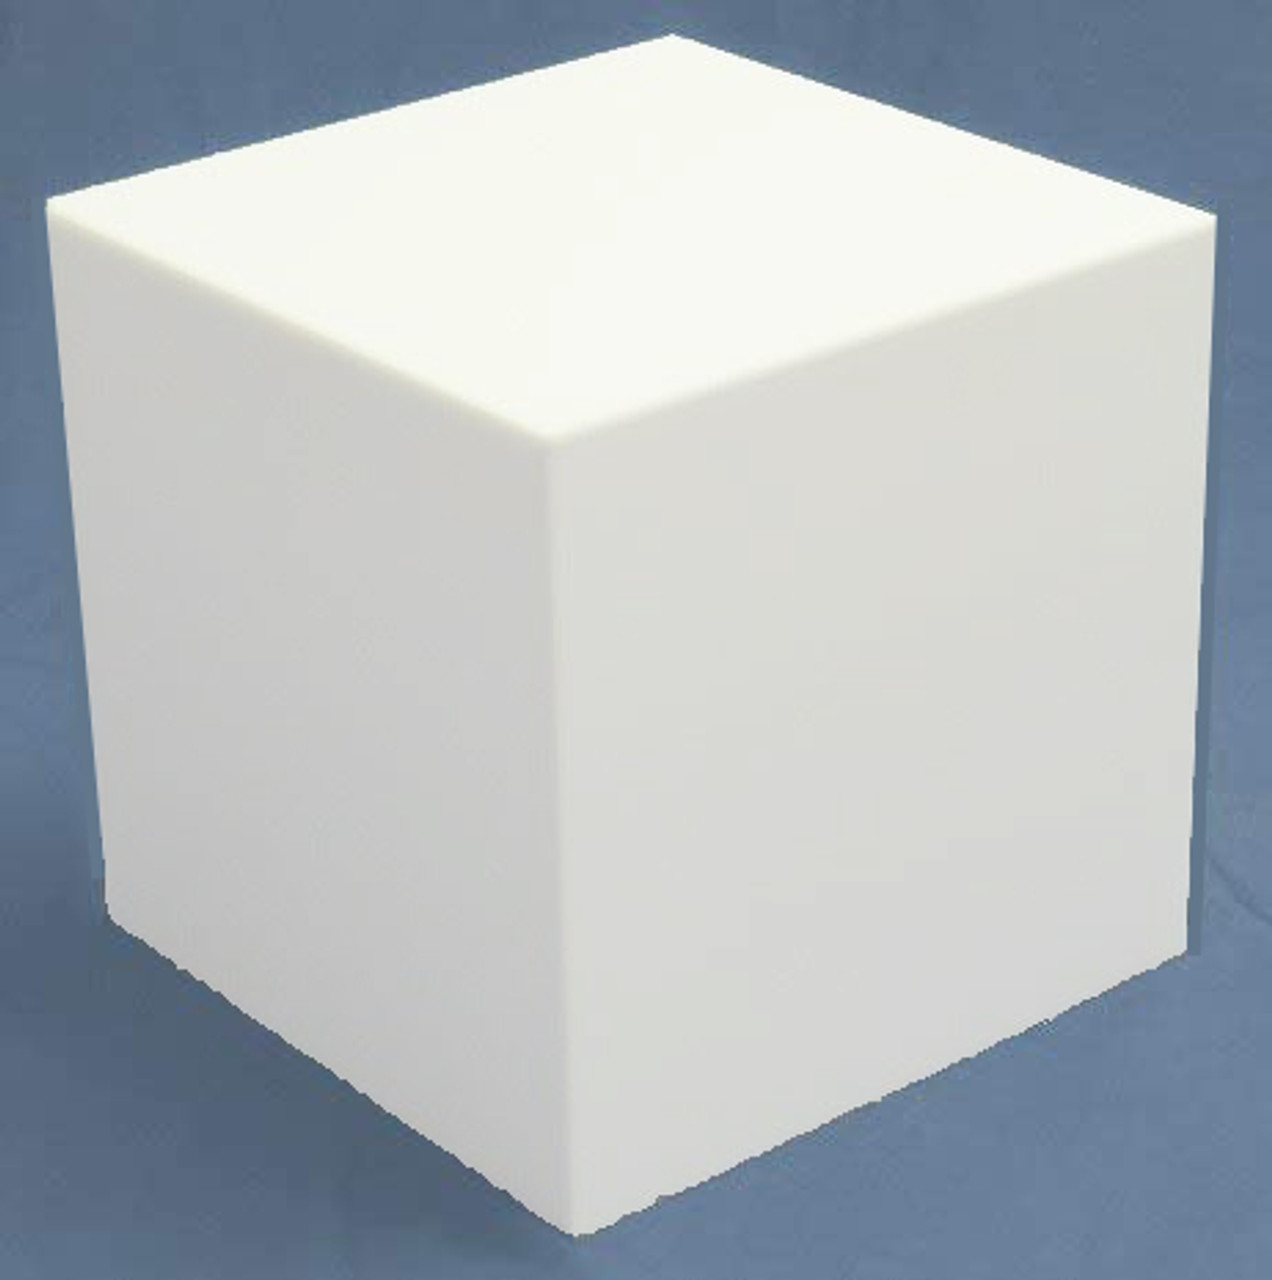 Clear Stands White Large Square Acrylic Display Cube, 20 Inch